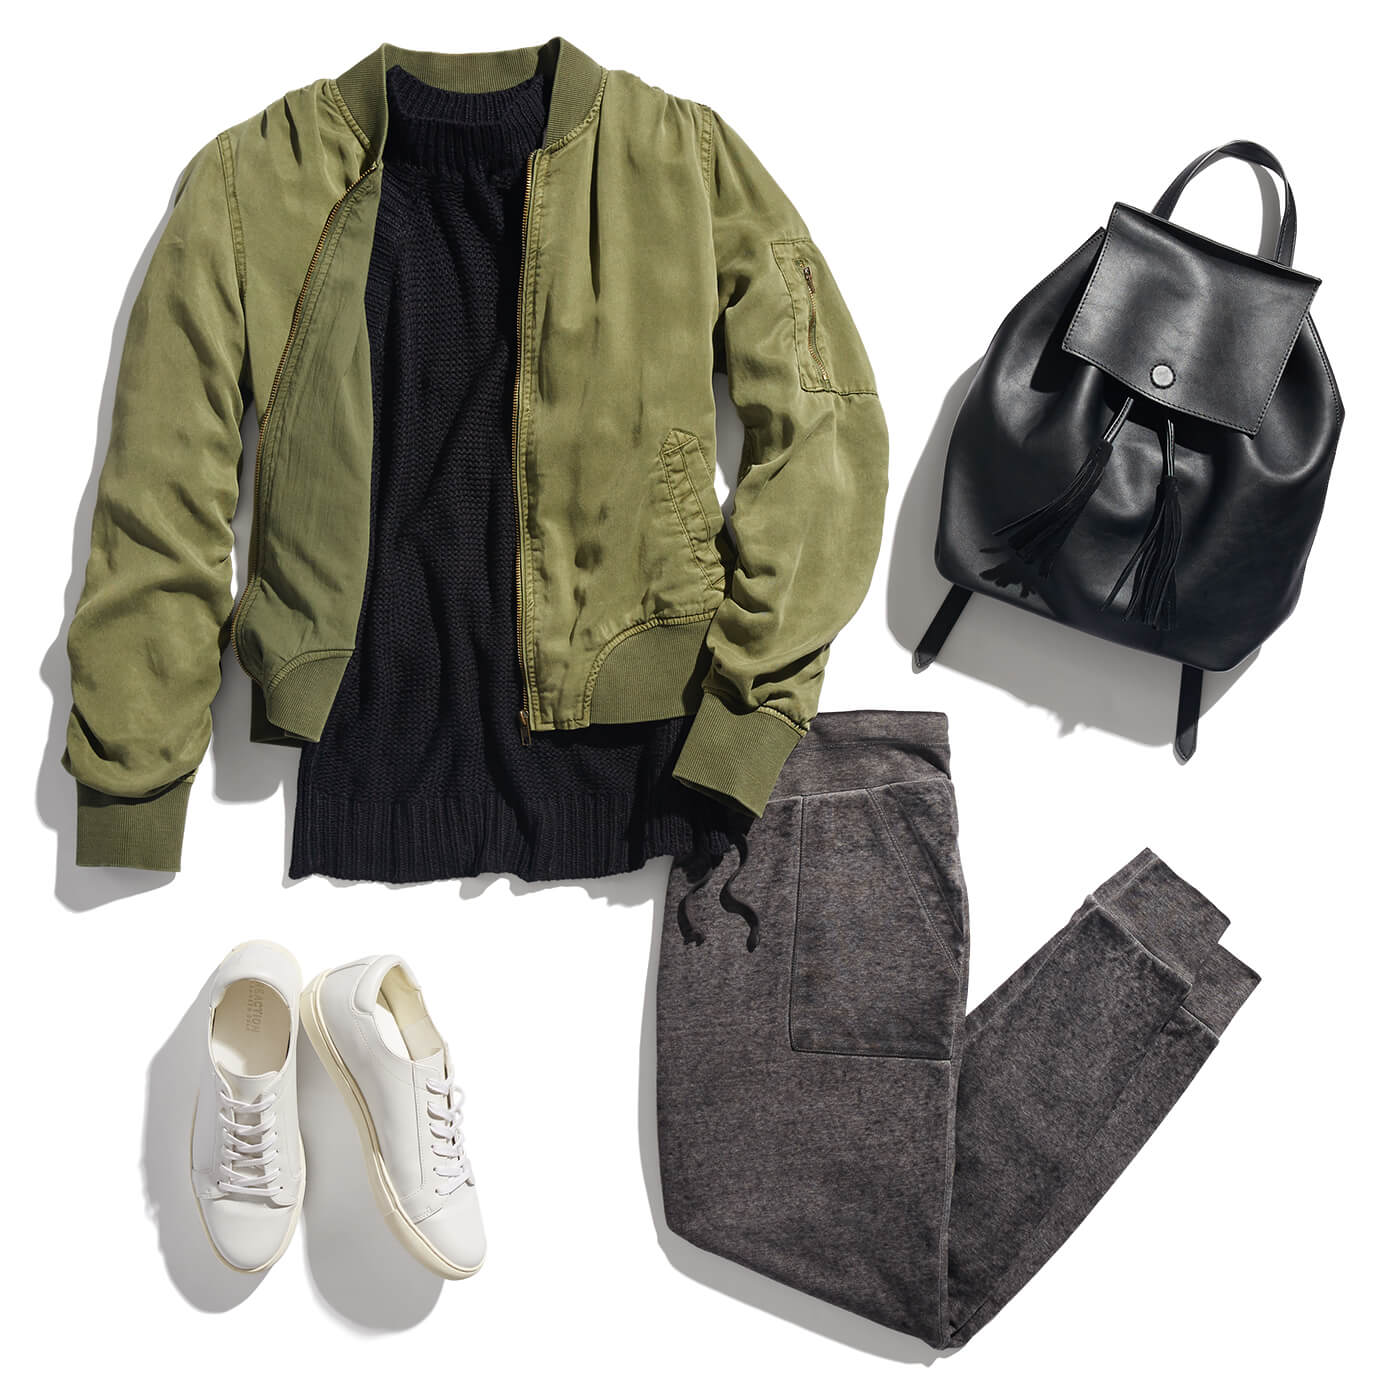 Hiking Date Outfit Idea